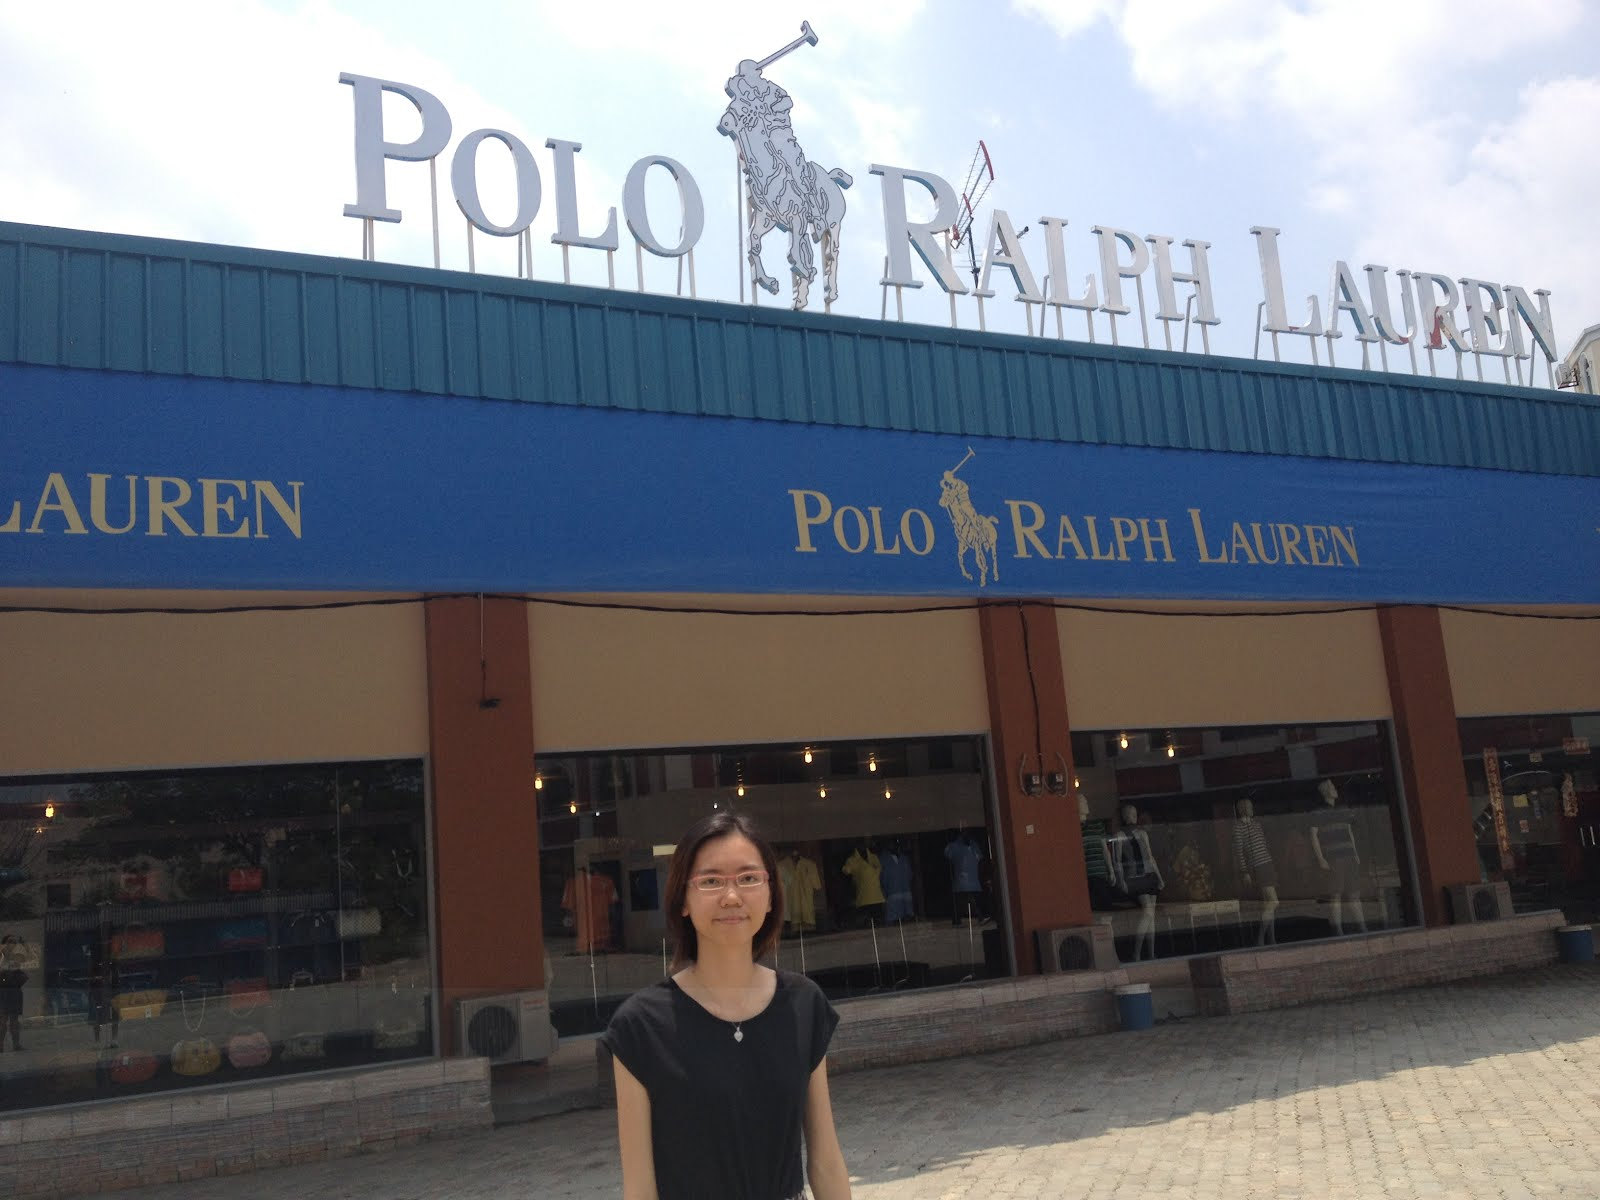 Huge Discounts On Mens,Womens,Childrens And More From The Biggest Online Sales & Clearance truexfilepv.cft Polo Ralph Lauren Clearance Sale At Polo Ralph Lauren Outlet Online truexfilepv.cf Quality Ralph Lauren Shirt Supply.